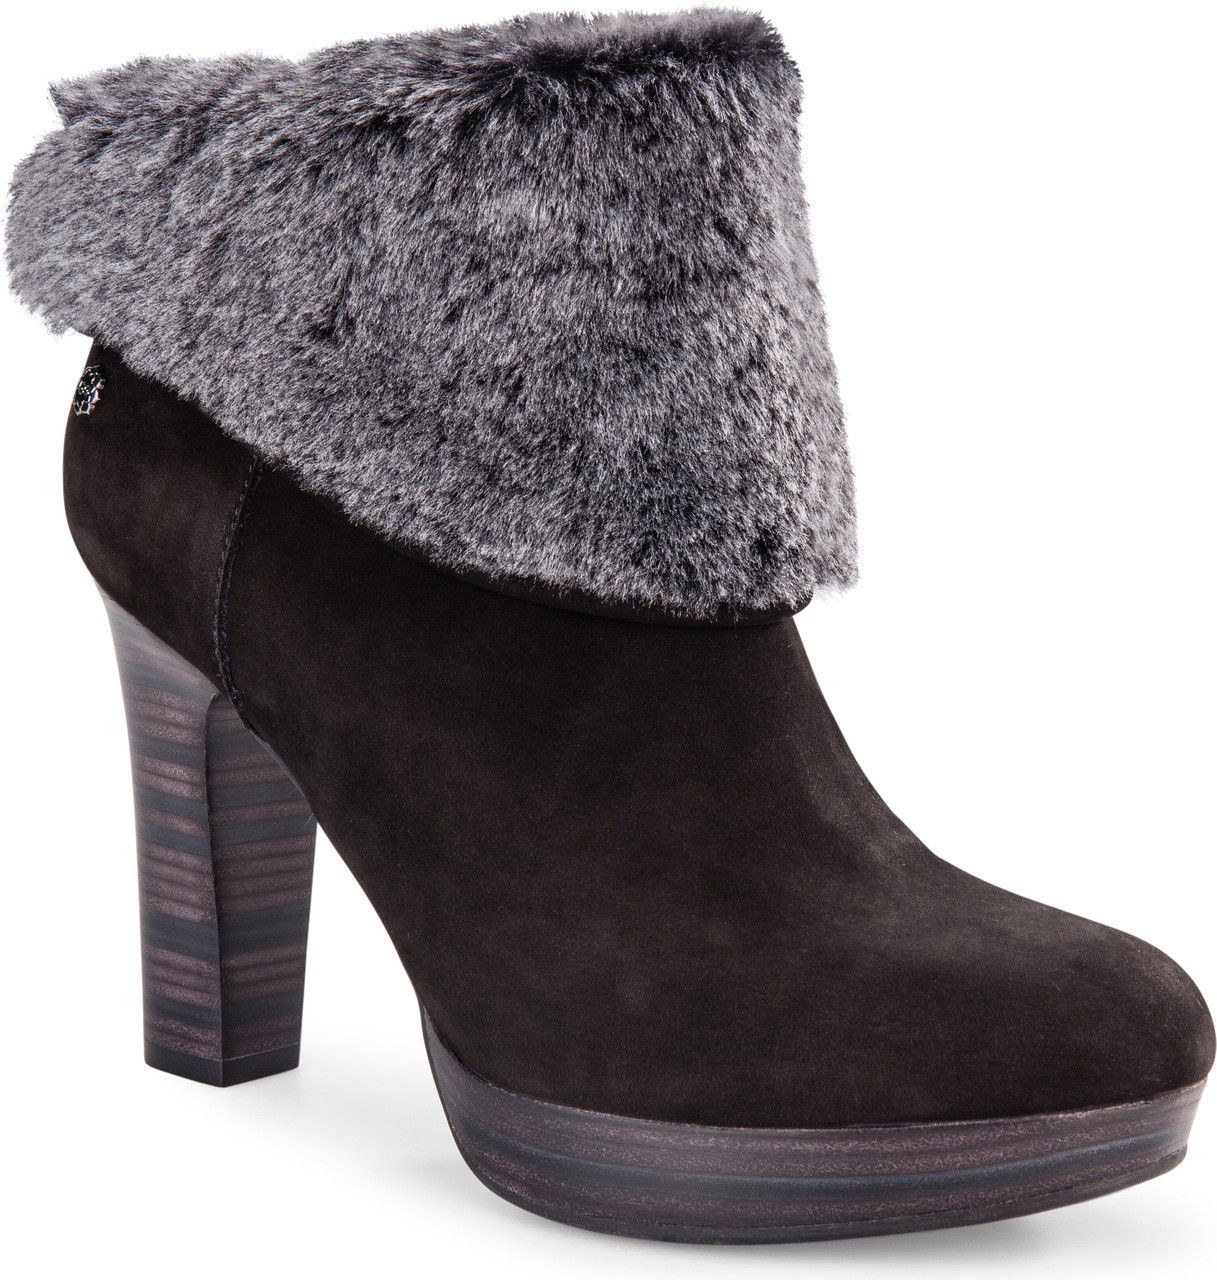 ... Ankle Boots; UGG Australia Women's Dandylion (Available in Multiple  Colors). Black Nubuck